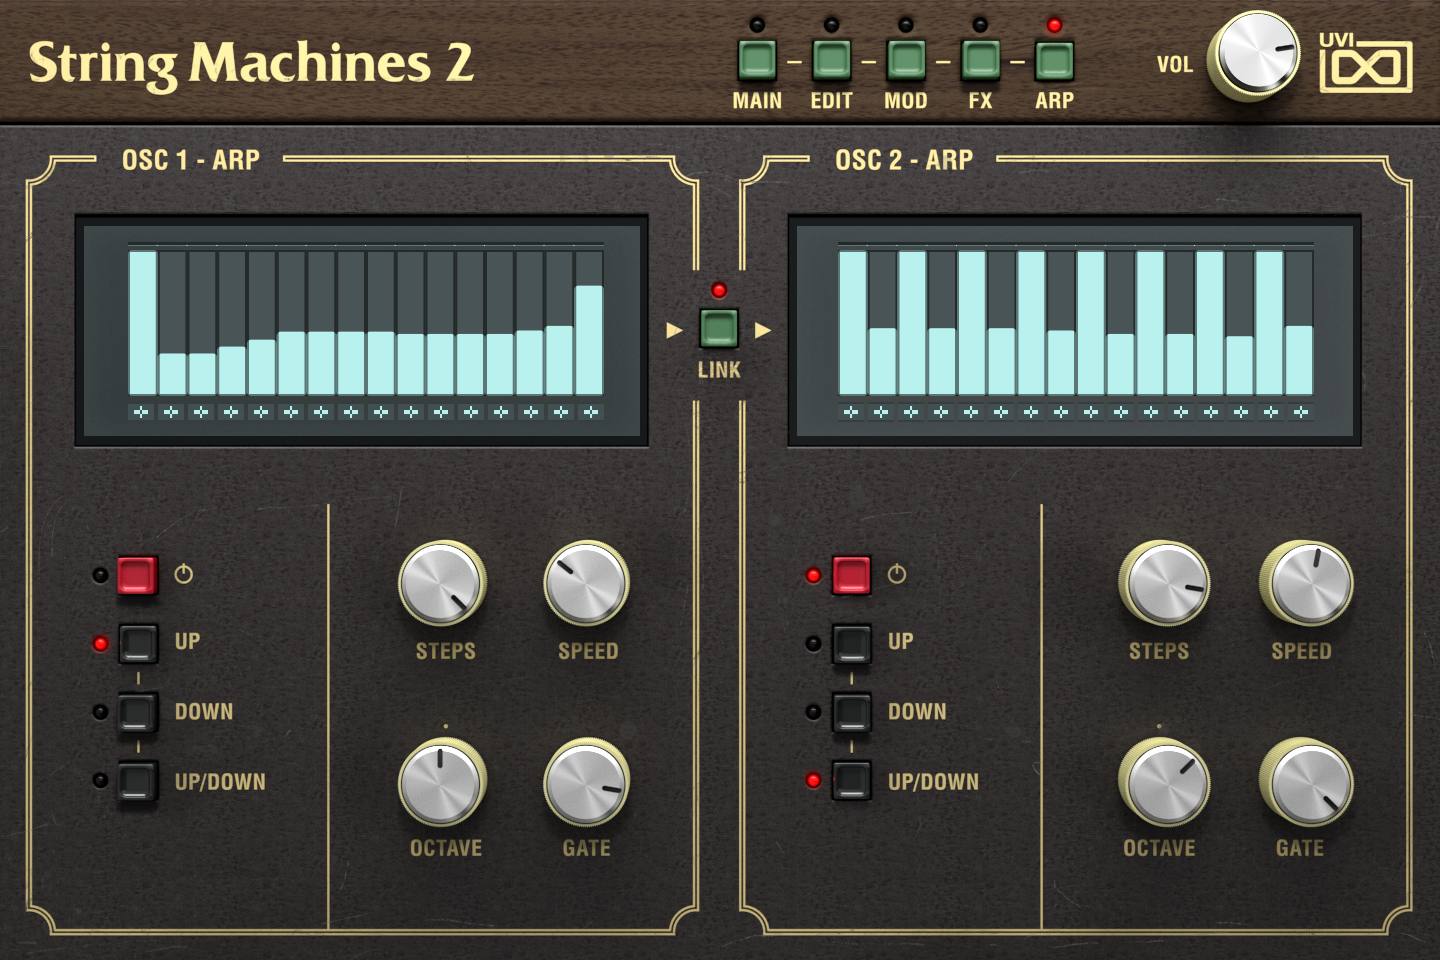 String Machines 2 | Arp GUI